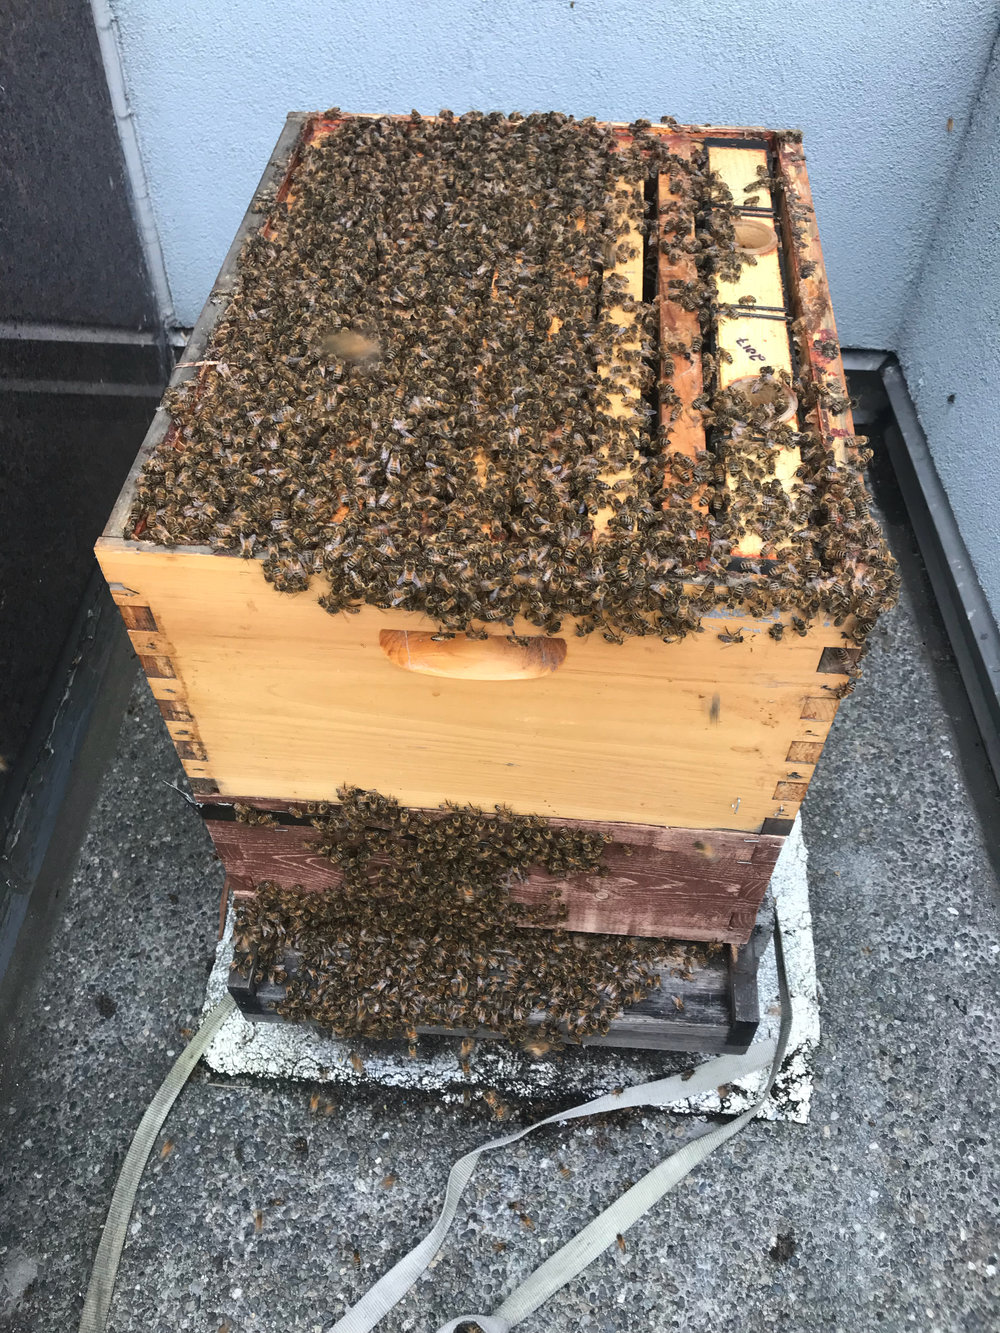 NORTH COLONY - Clear indication of a growing colony as bees seem to have great numbers.